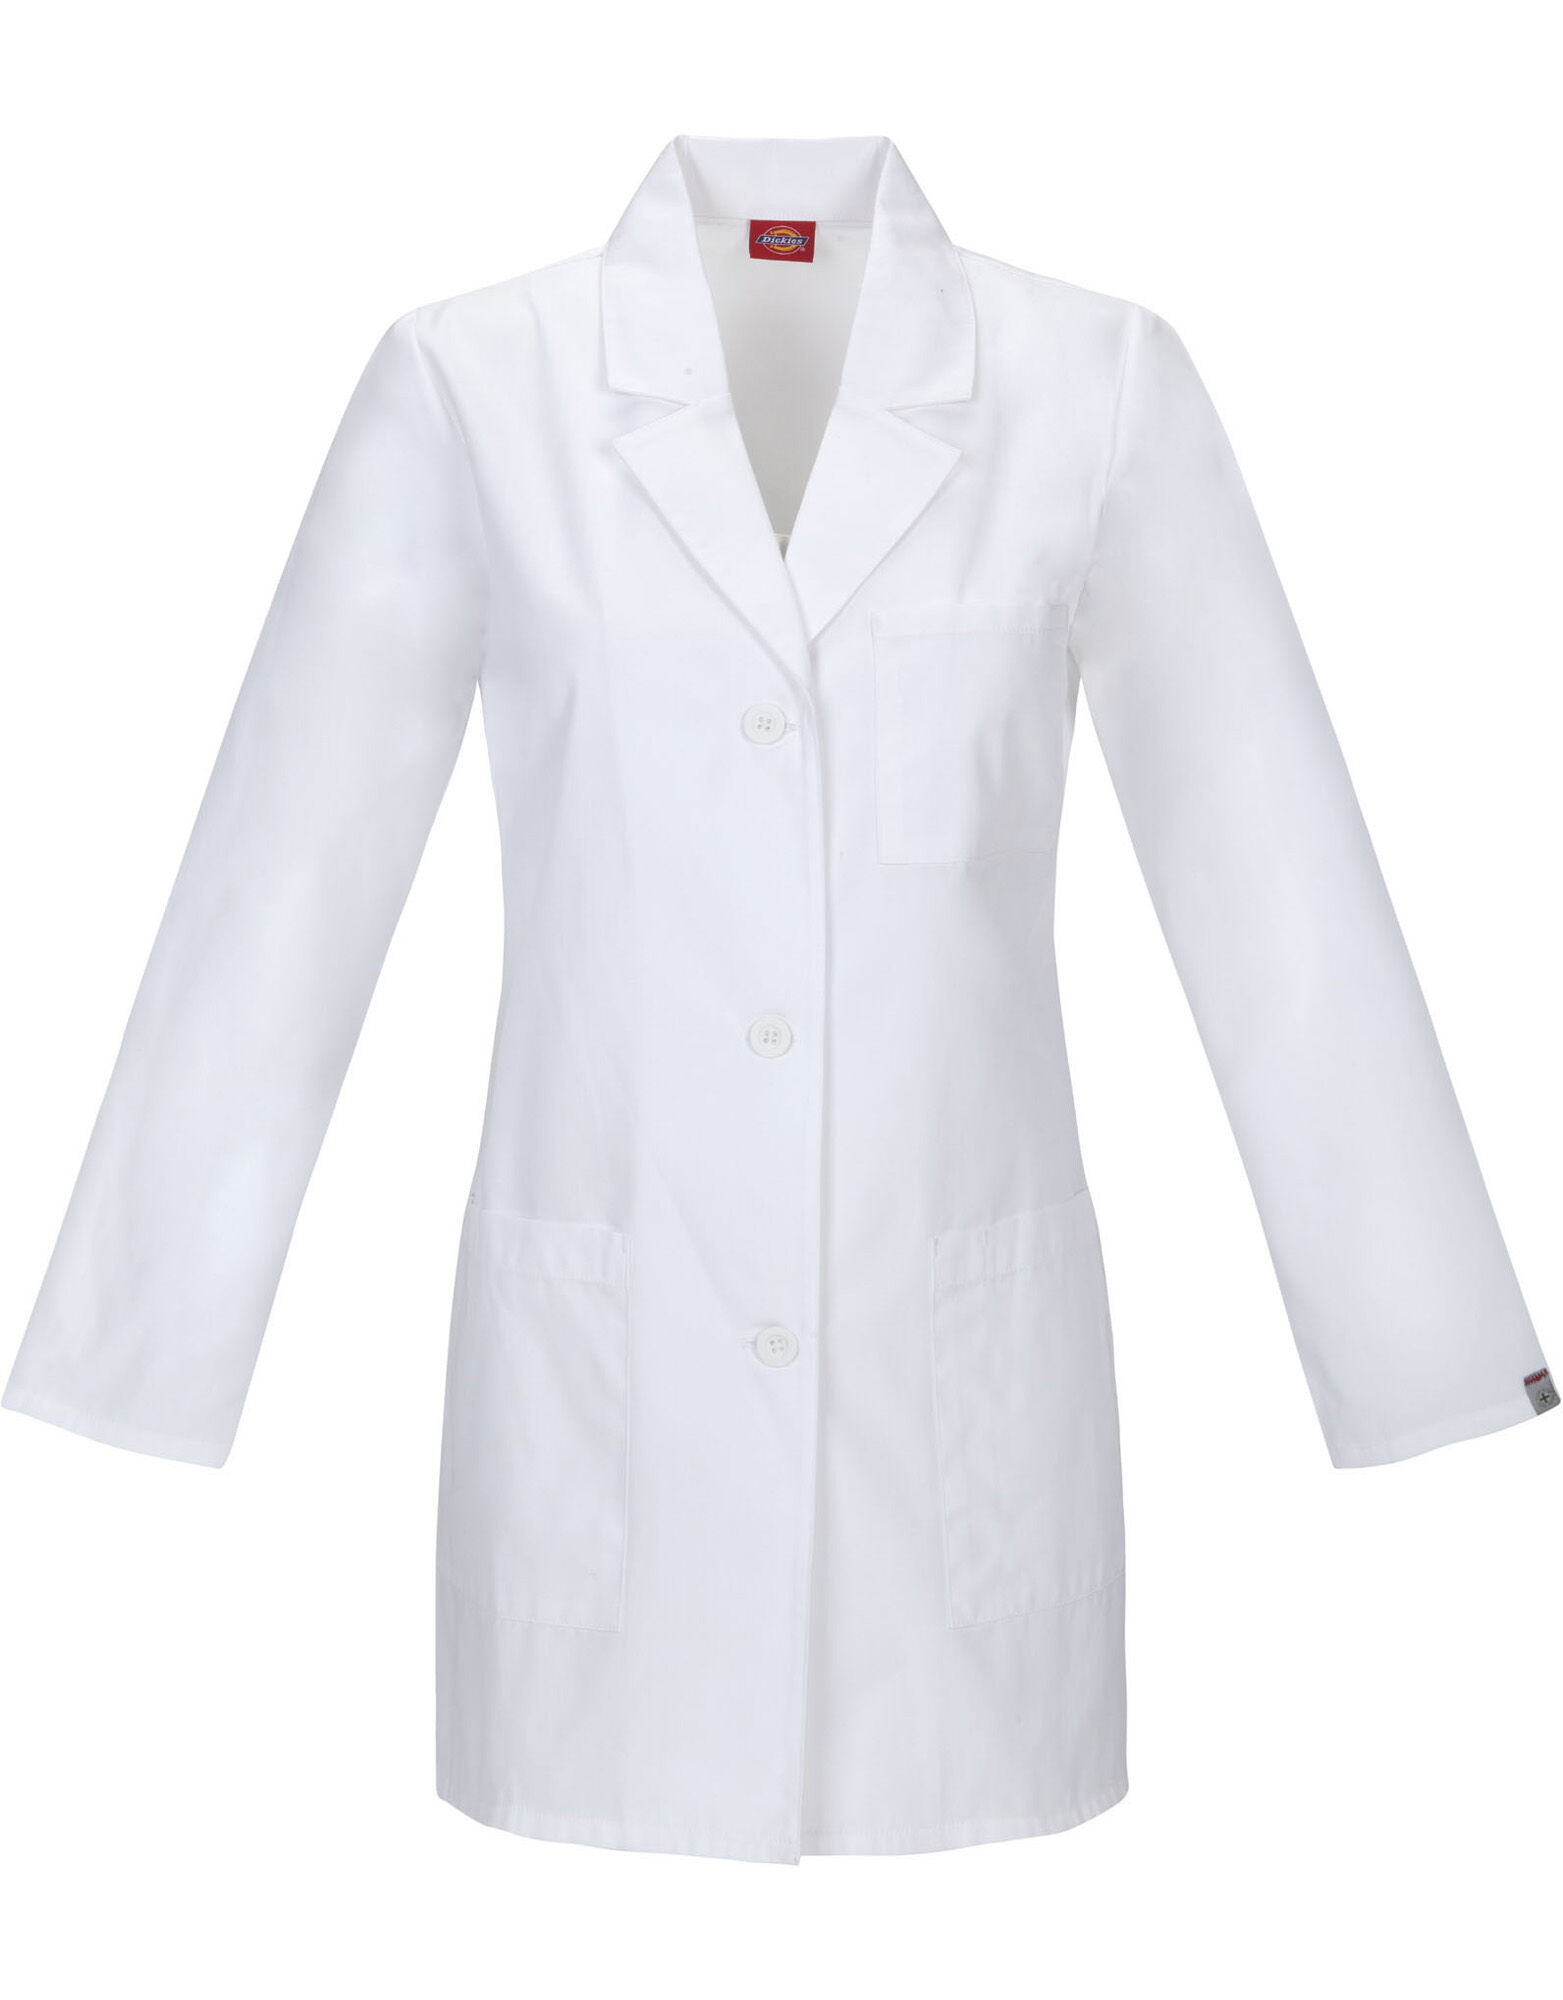 Women's EDS Signature Lab Coat | Womens Scrubs | Dickies